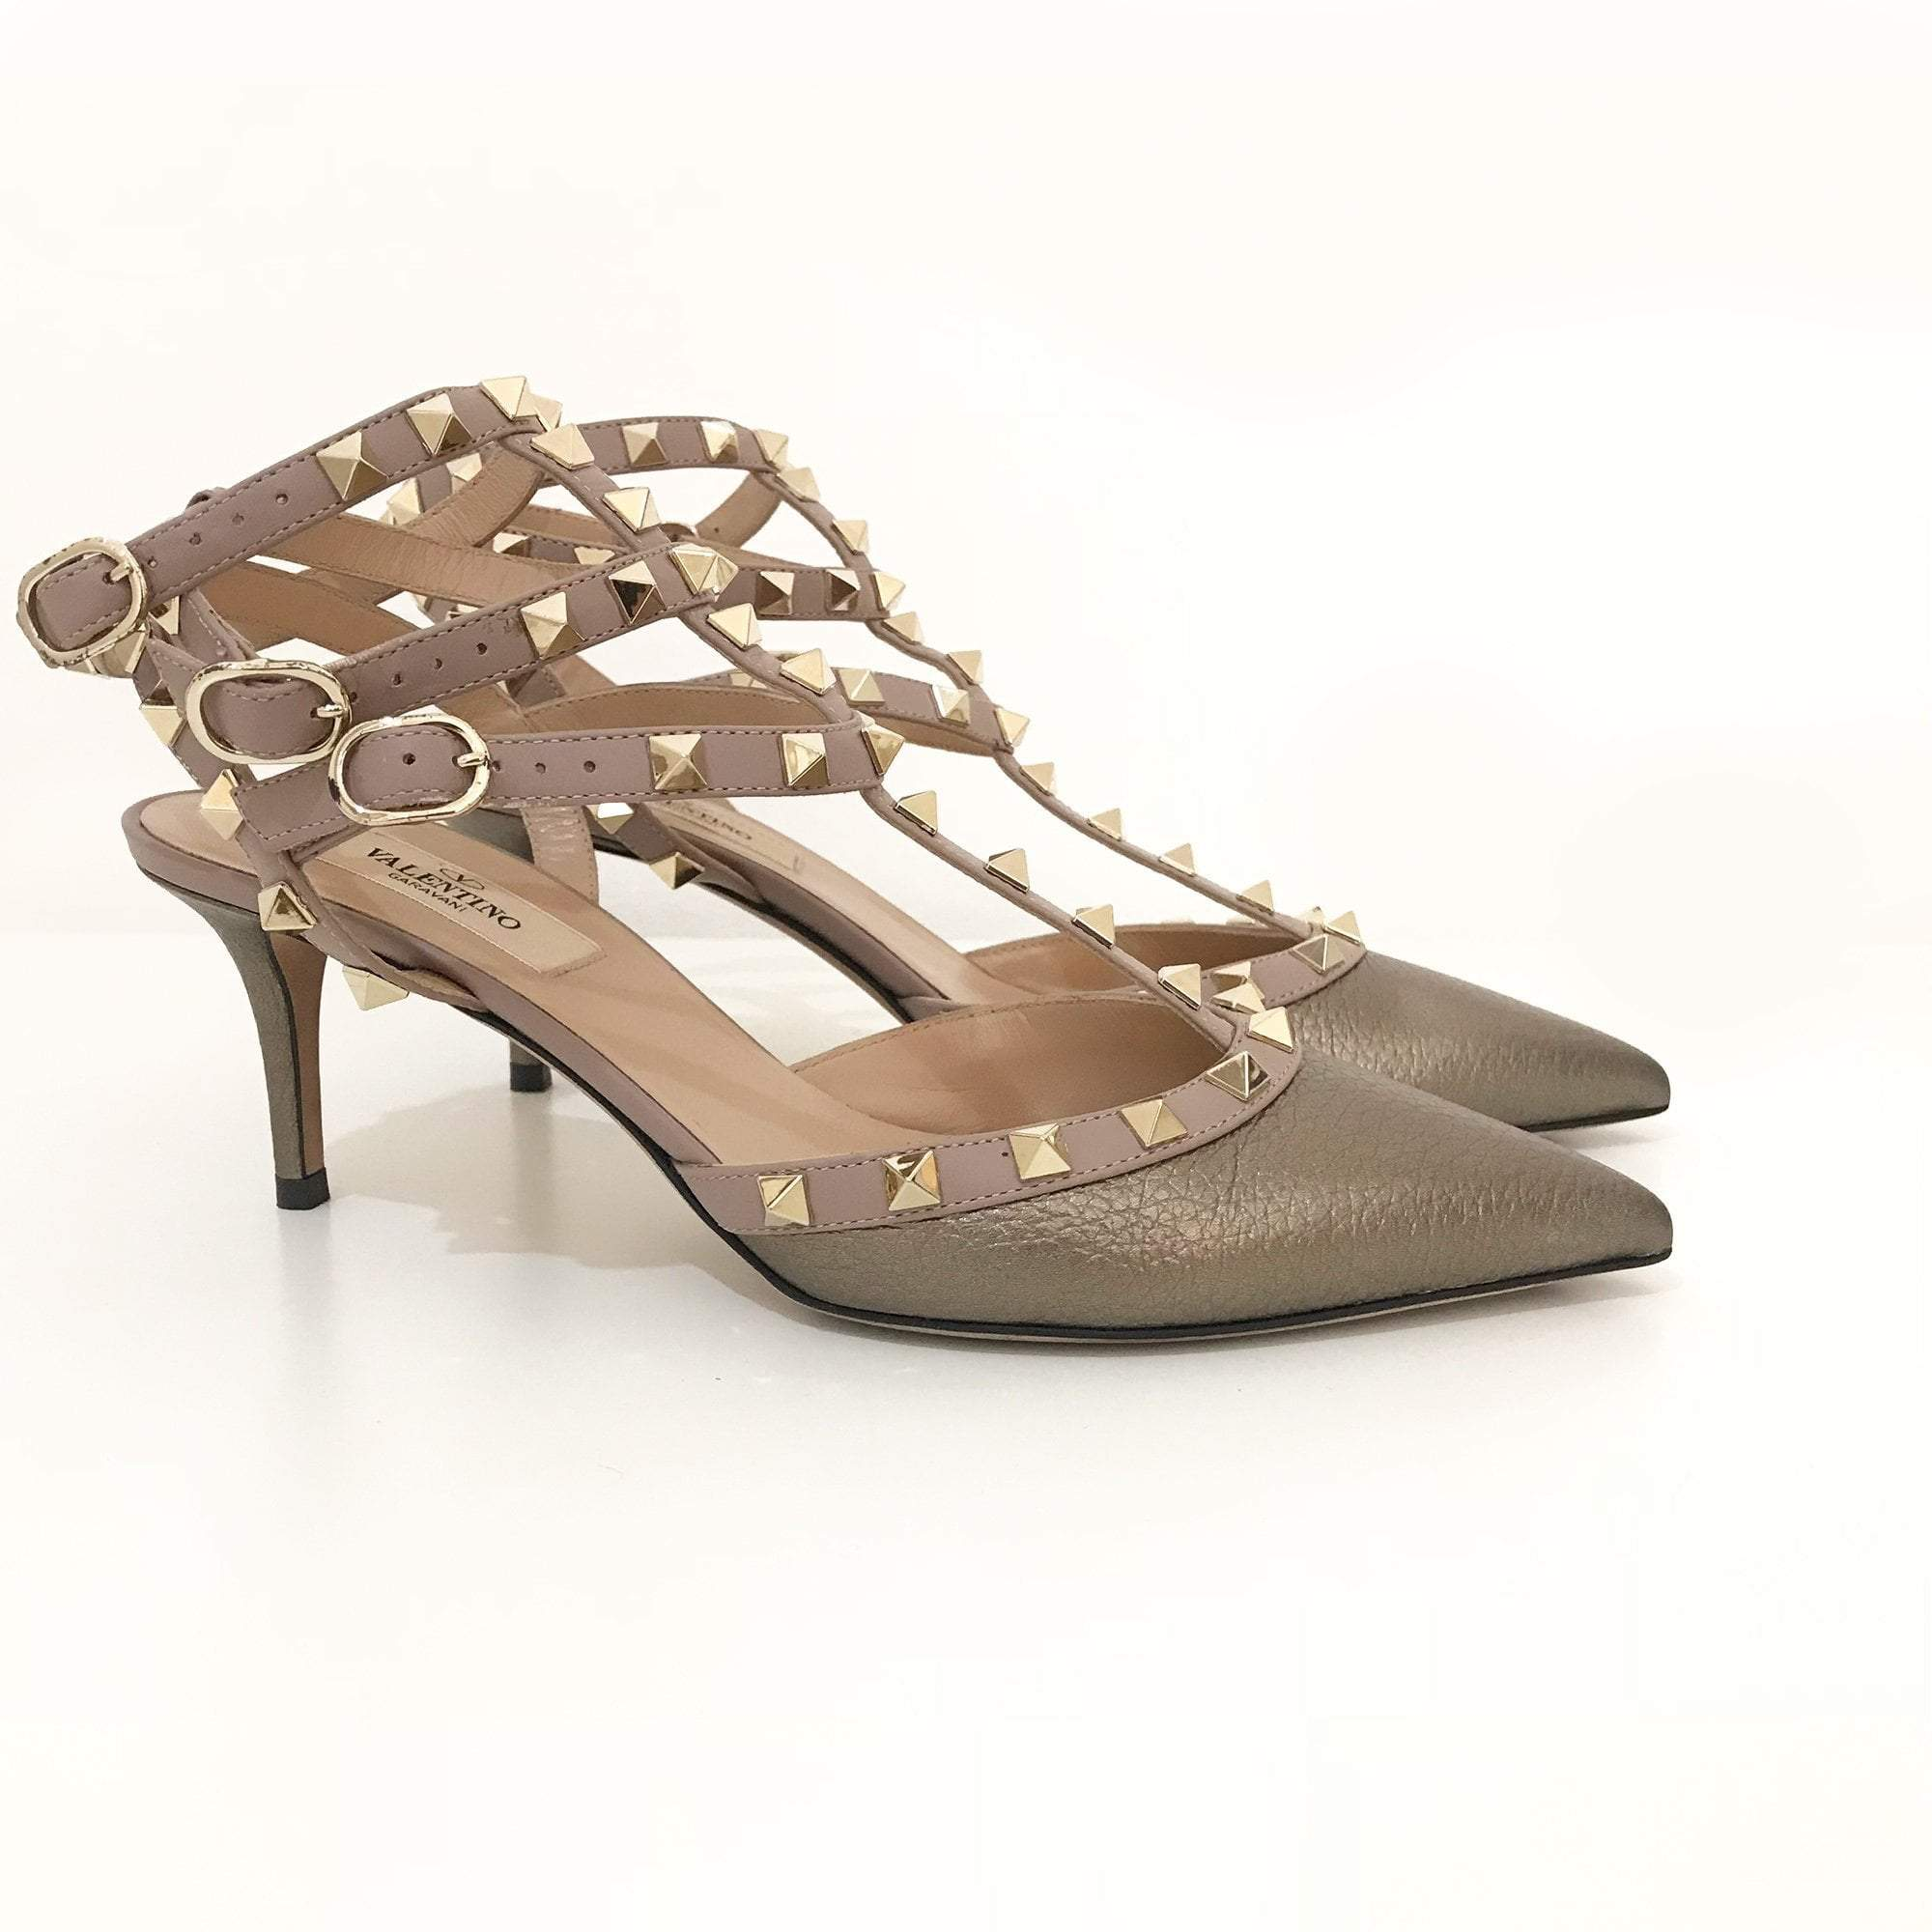 Valentino Garavani Rockstud Metallic Textured Leather Pumps